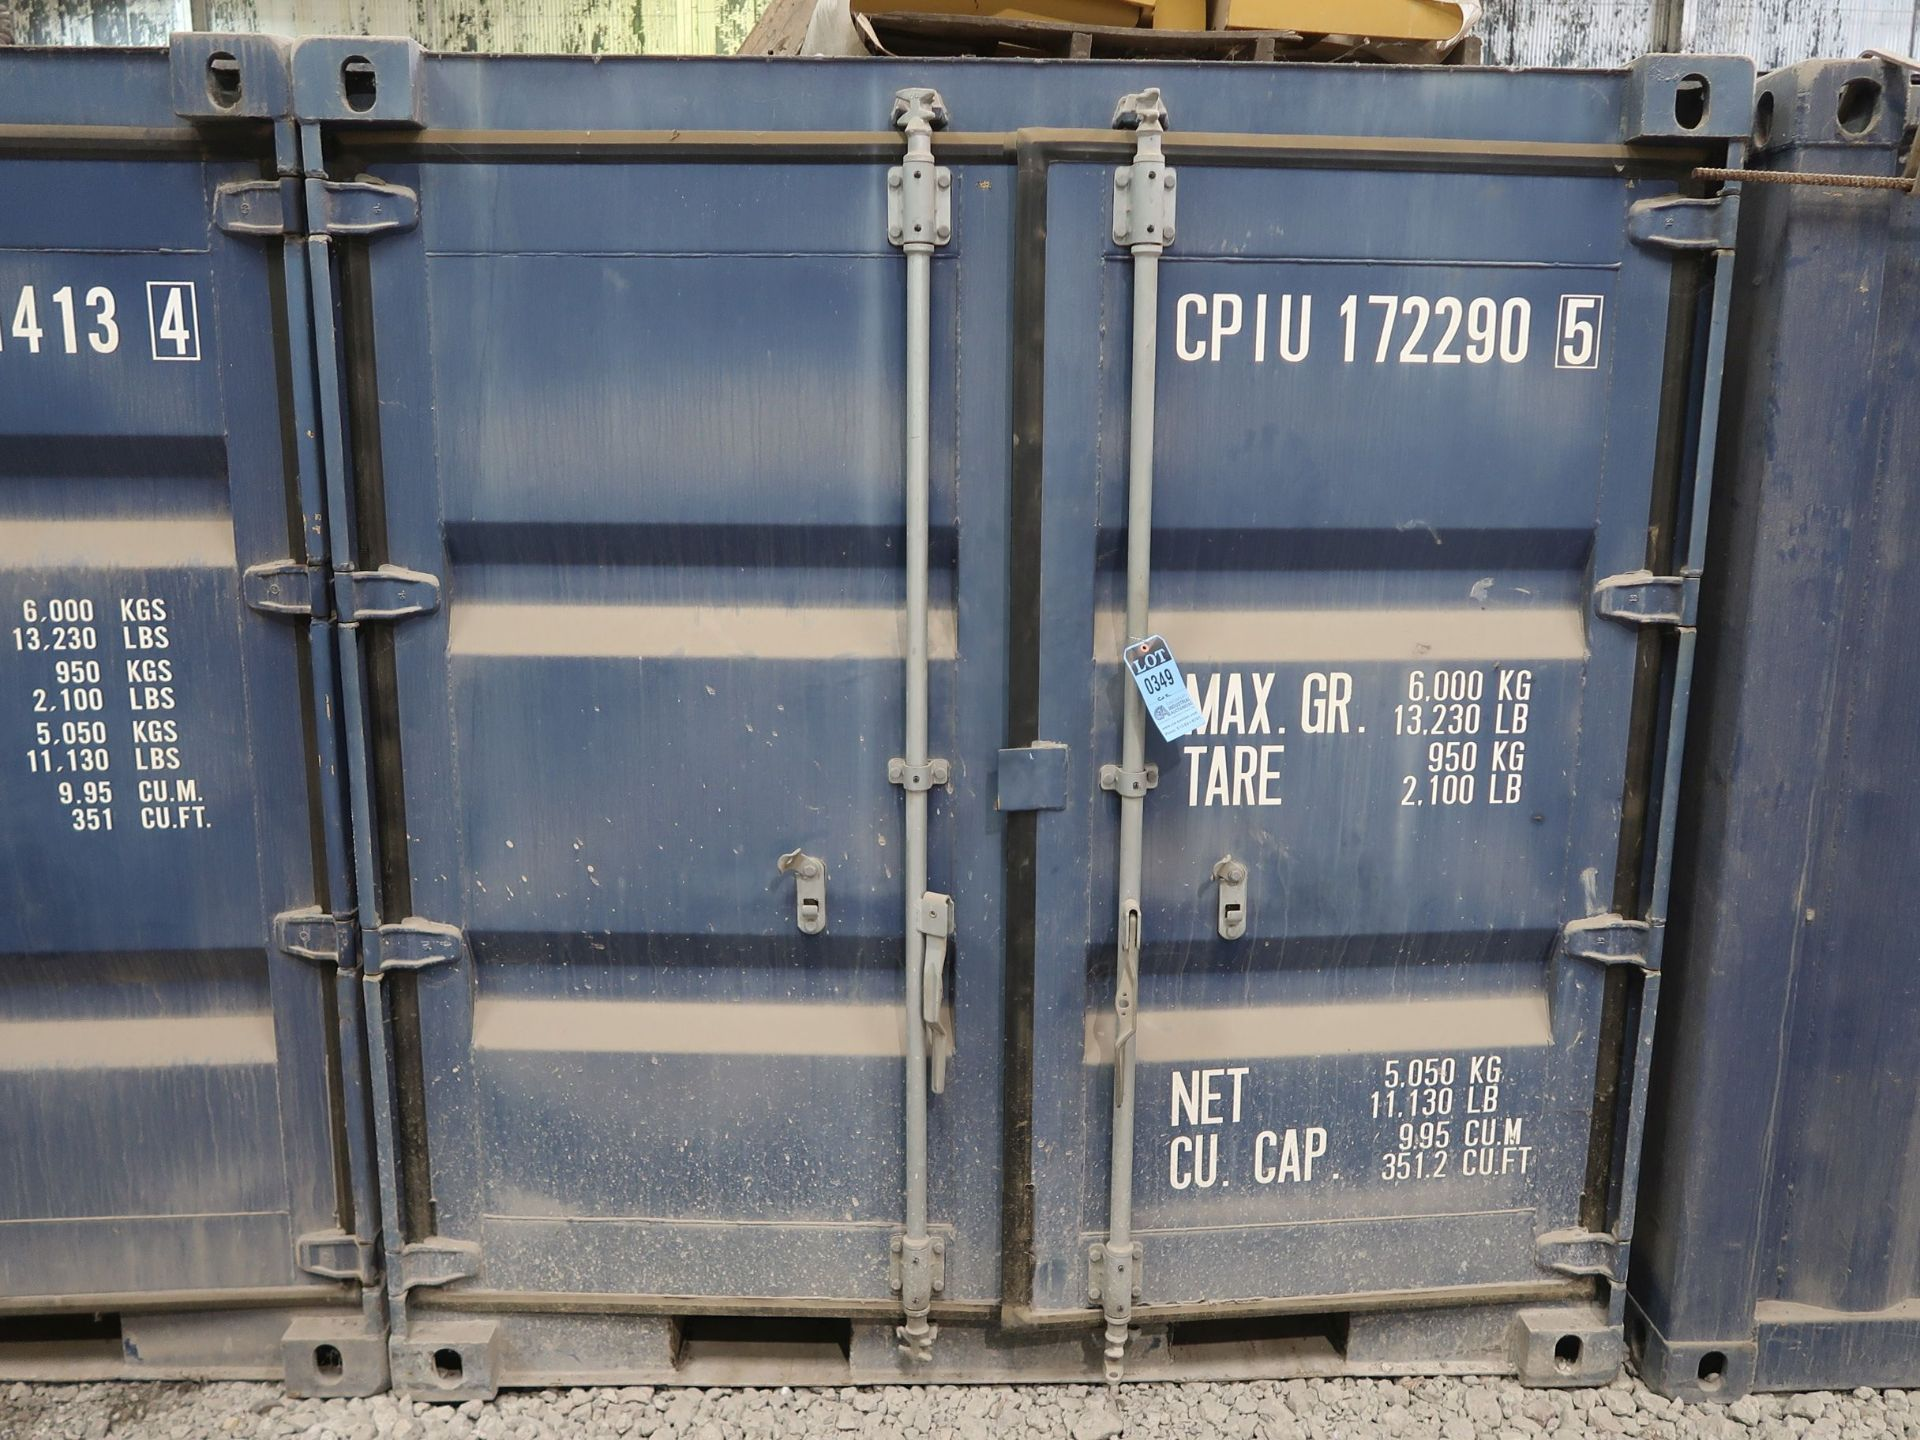 Lot 349 - 8' WIDE X 20' LONG CHARLESTON MARINE CONEX STORAGE CONTAINER